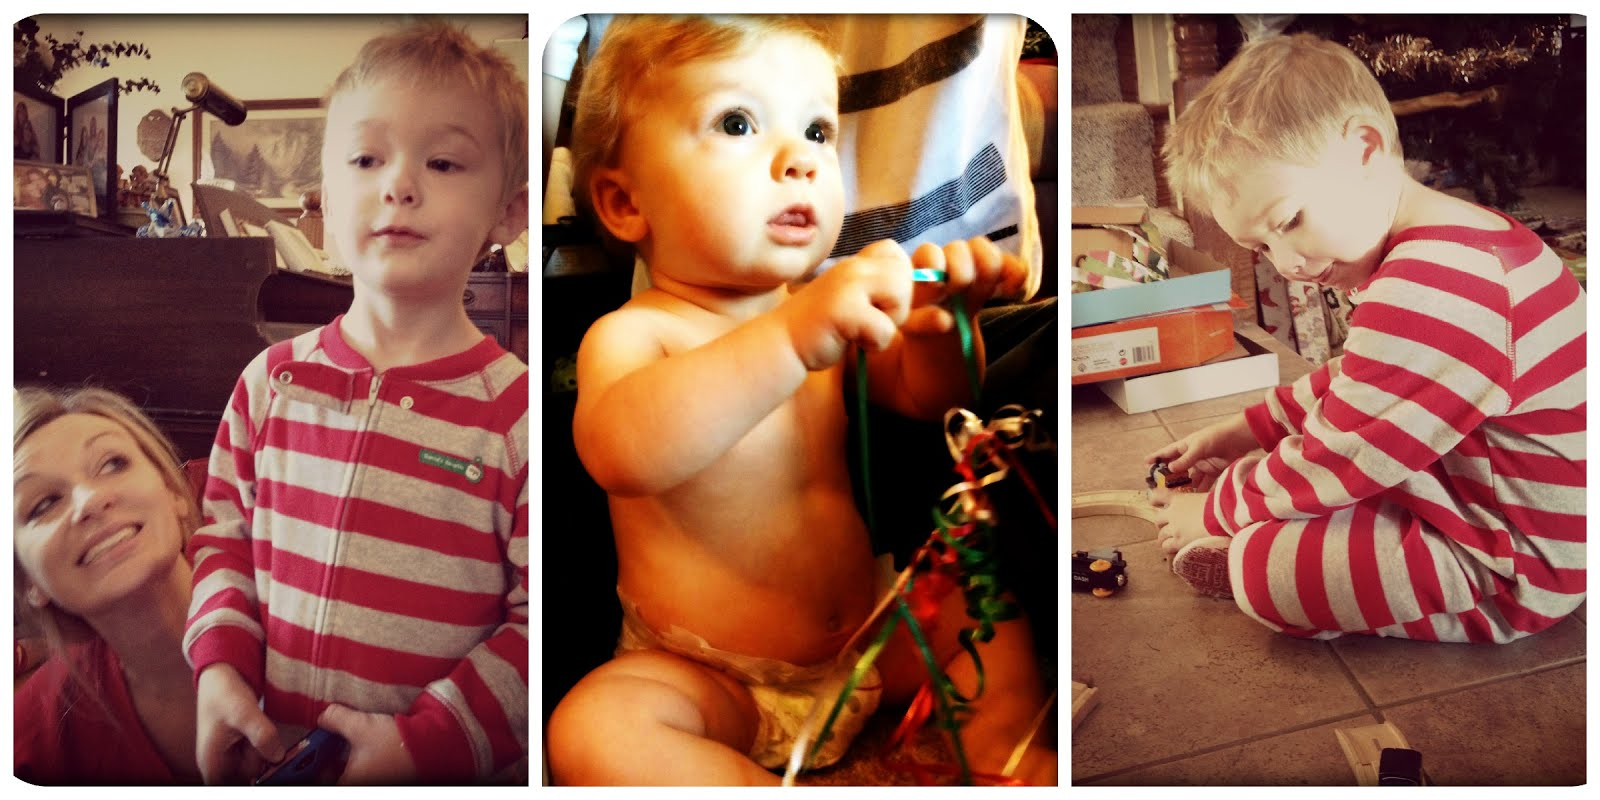 J ready to open presents, Coop not caring about presents at all but loving the string, J and some new trains